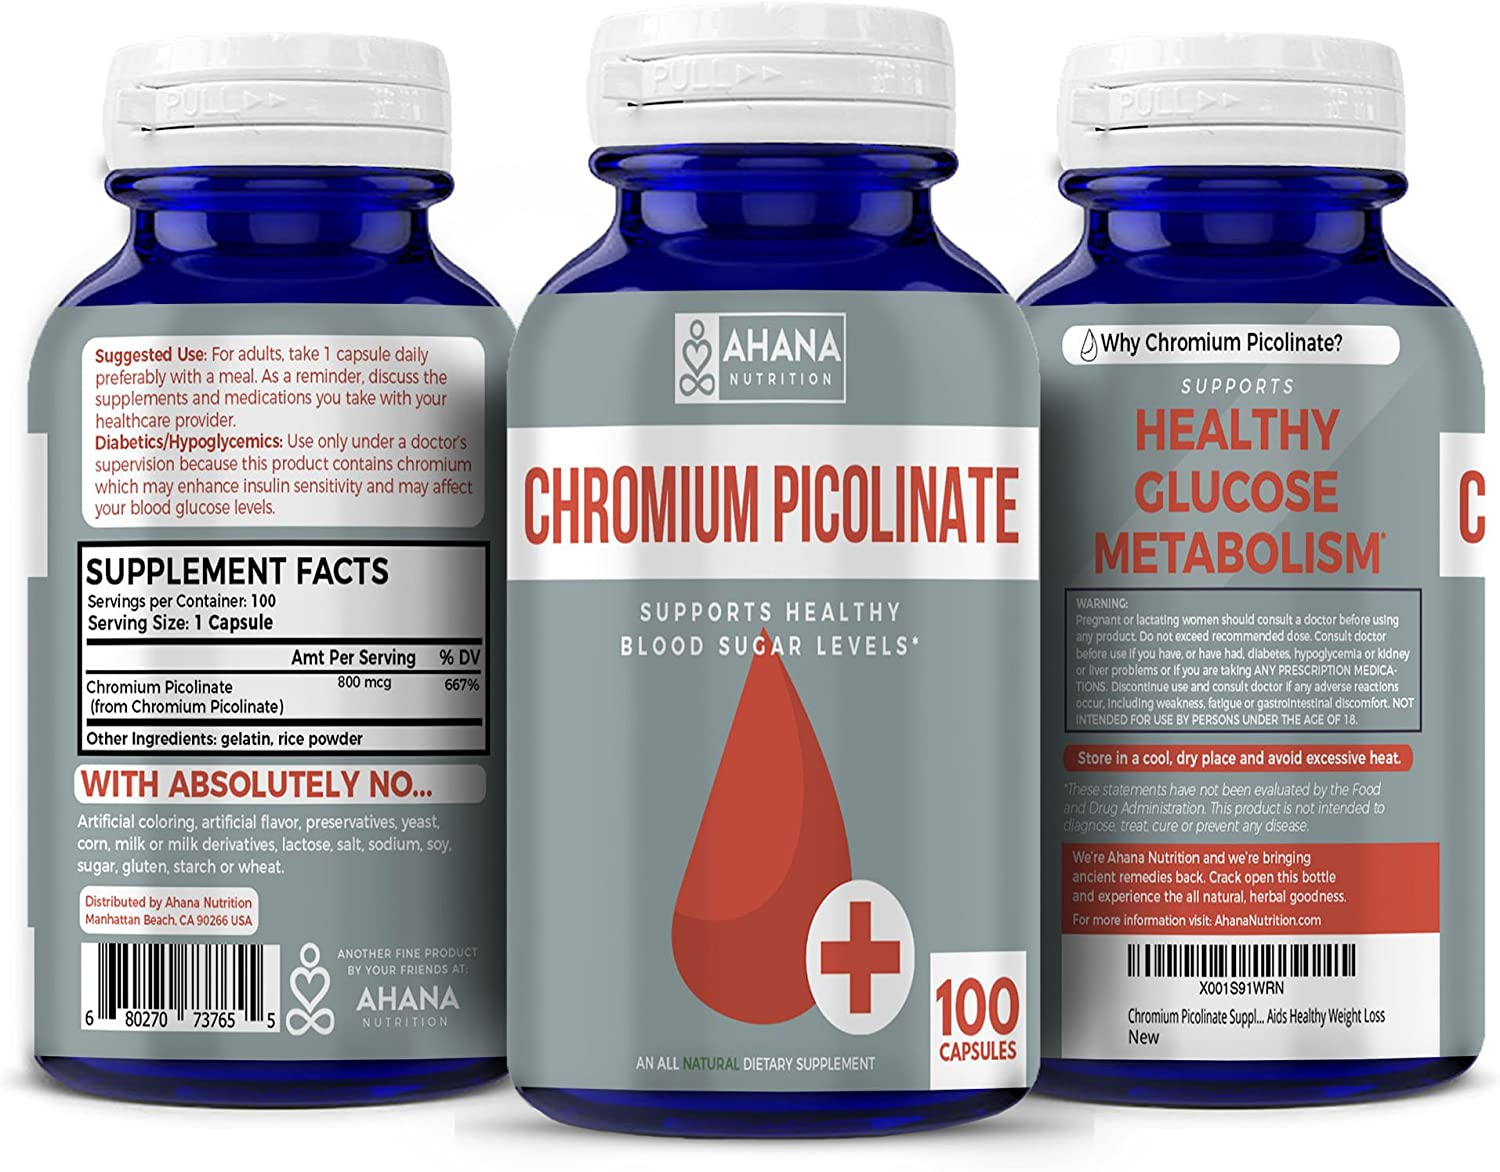 Ahana Nutrition Chromium Picolinate Supplement - Maintains Blood Sugar Levels & Aids Healthy Weight Loss (100 Capsules)